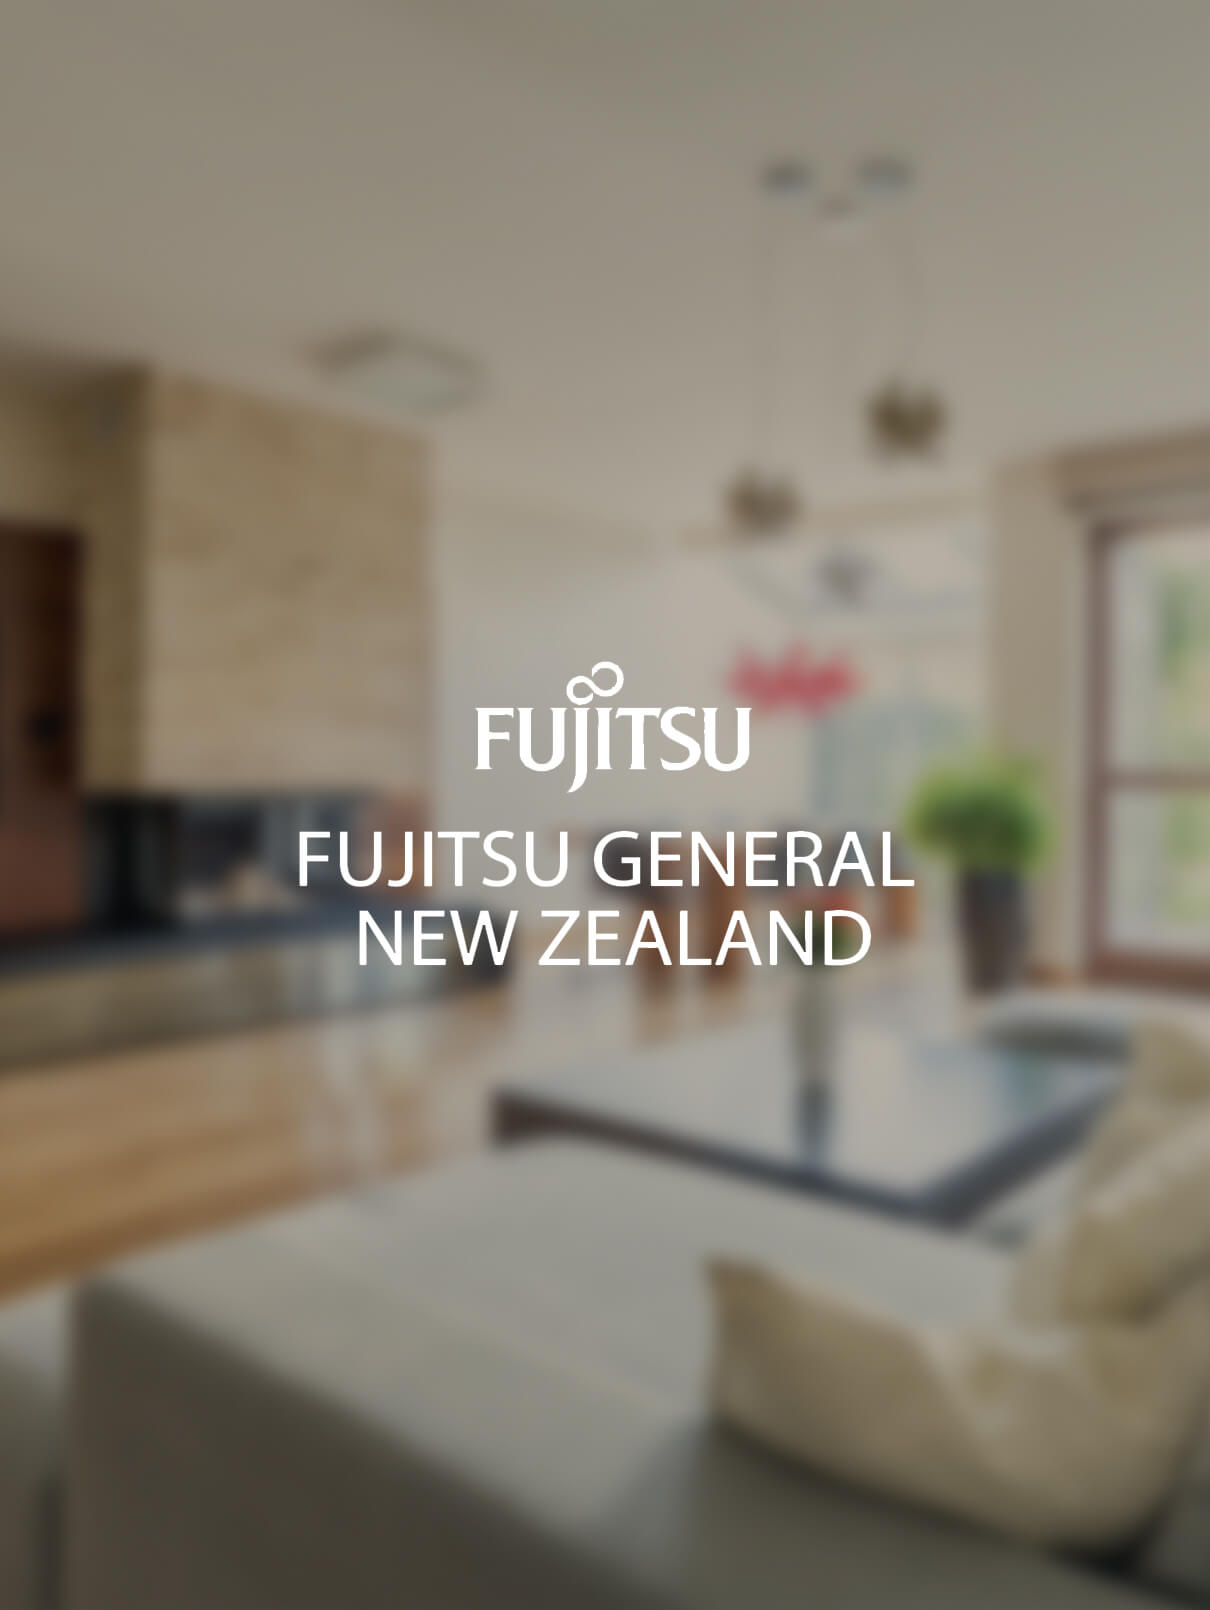 Fujitsu General New Zealand